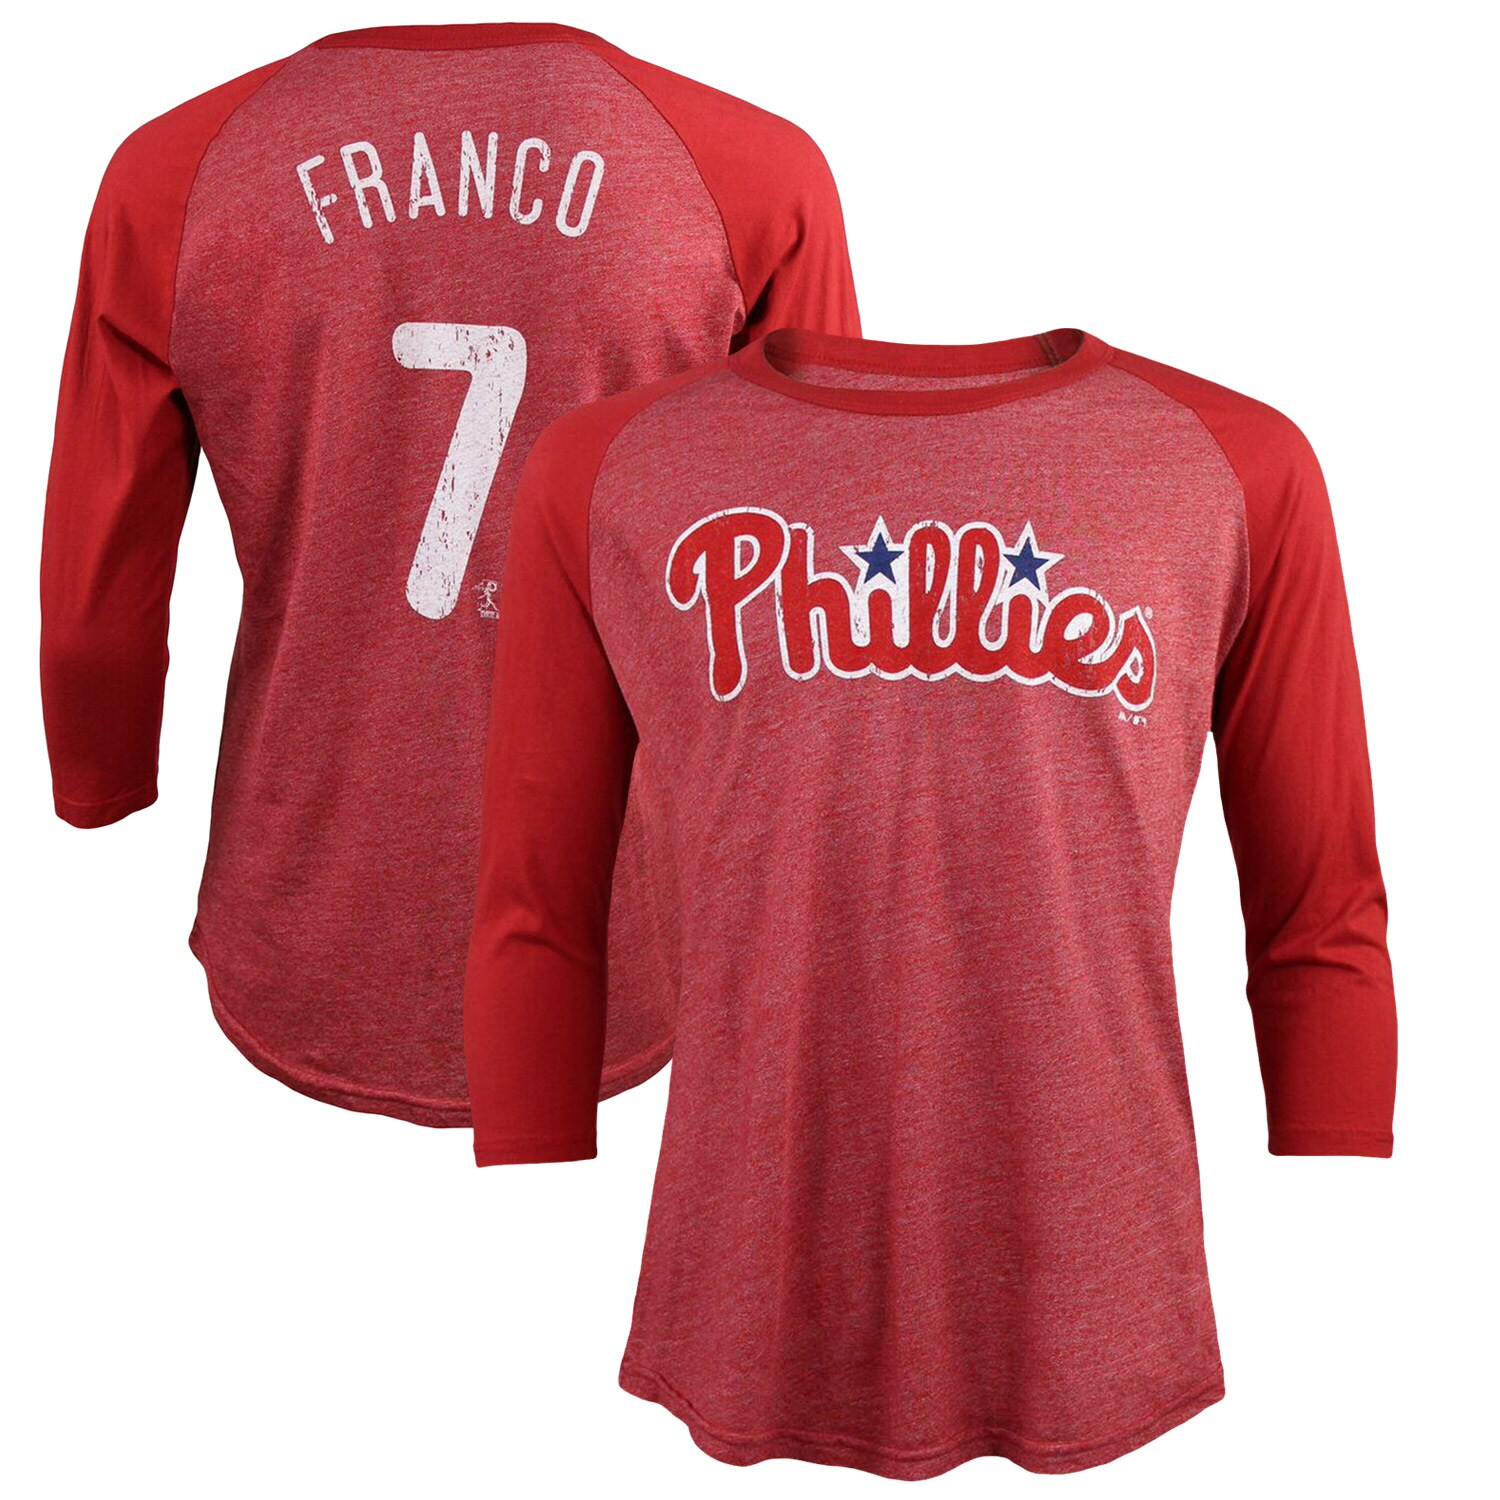 Maikel Franco Philadelphia Phillies Majestic Threads Tri-Blend 3/4-Sleeve Raglan Name & Number T-Shirt - Red